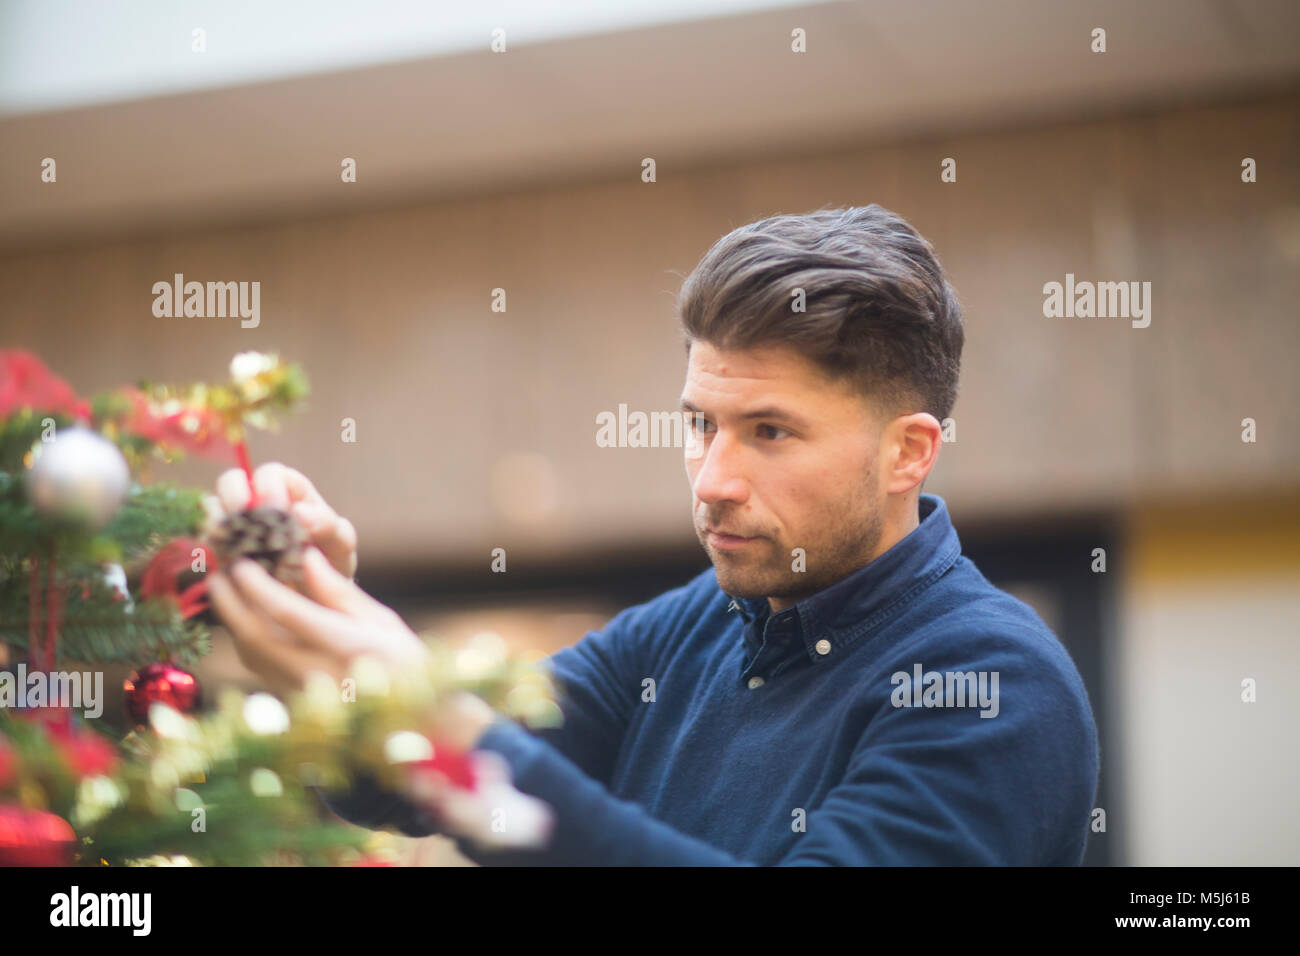 Portrait of man looking at Christmas decoration in a shopping mall - Stock Image